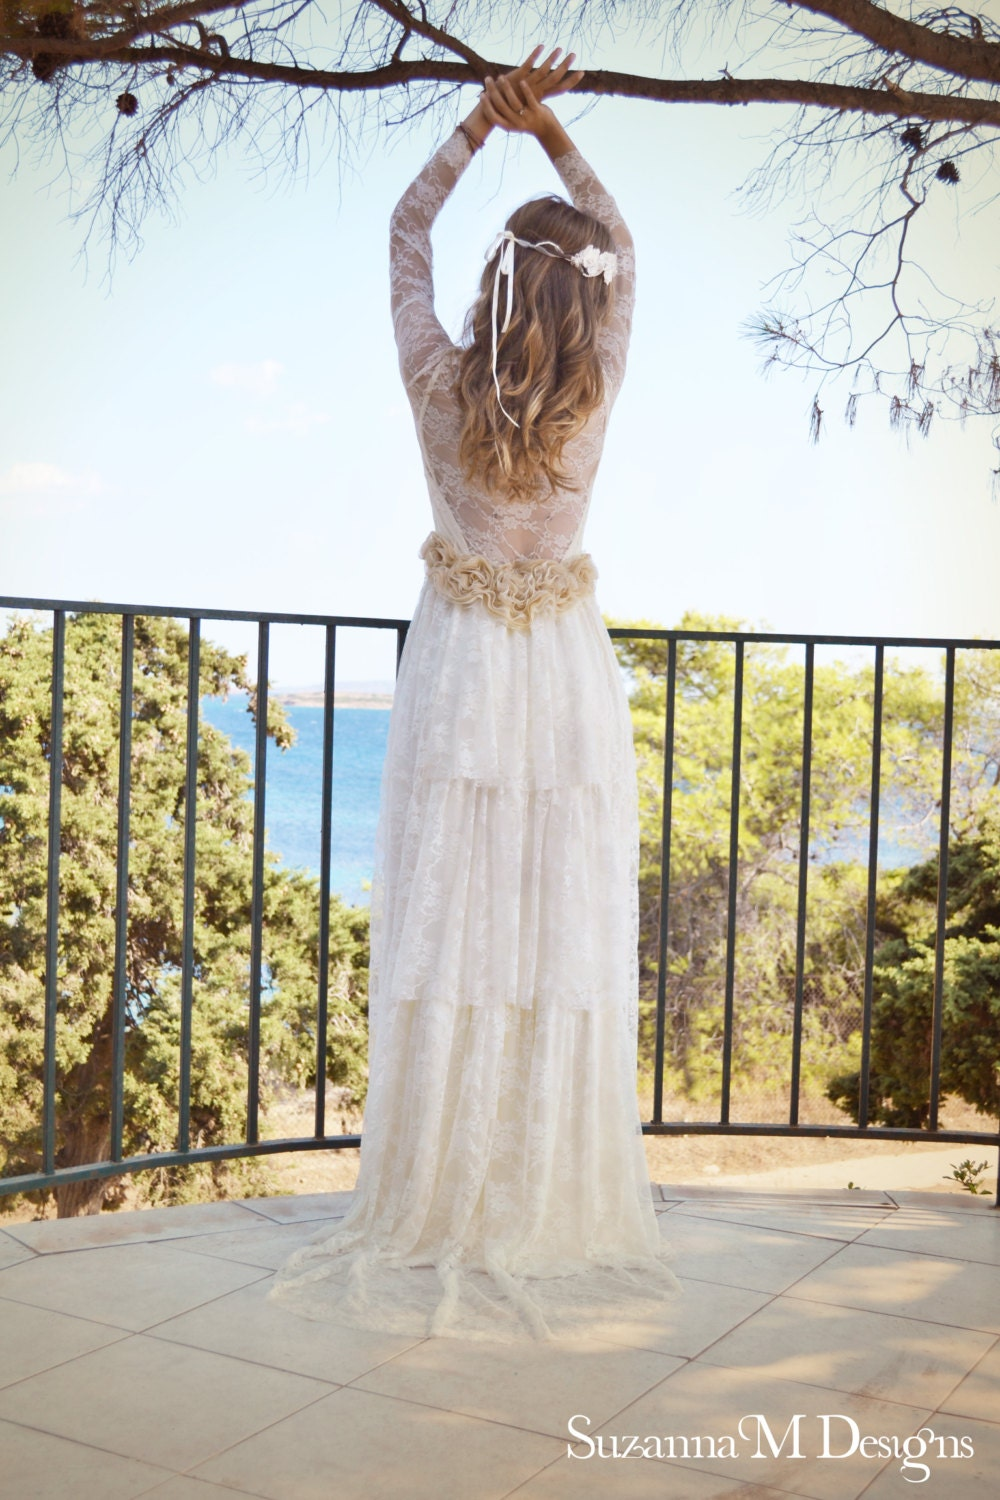 Boho Lace Wedding Dress Etsy : Wedding dress beach boho lace